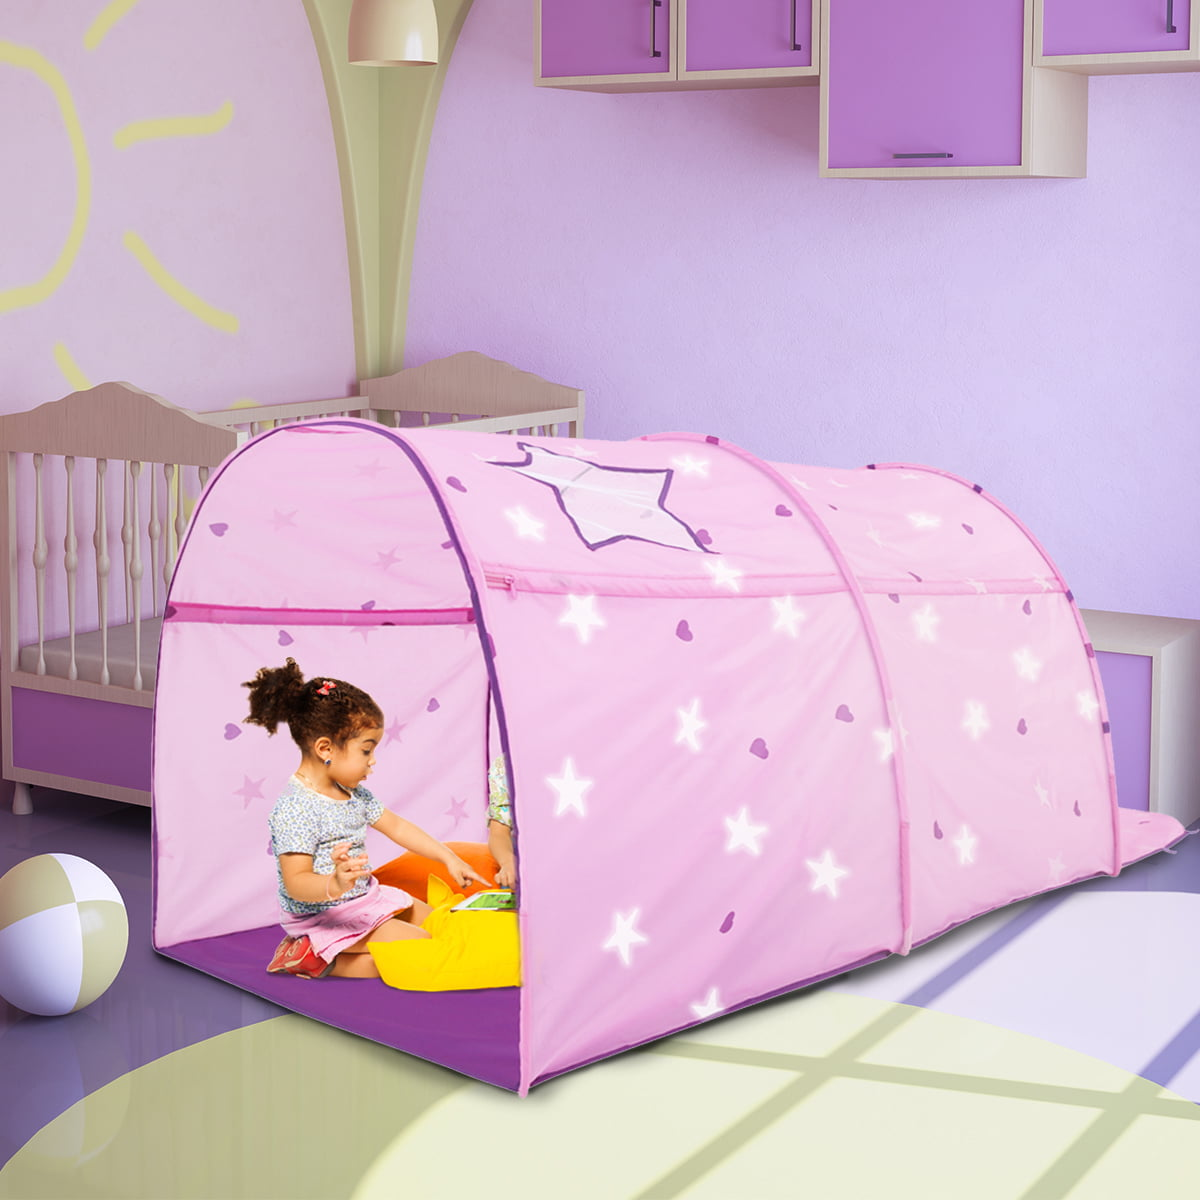 Bed Tent Canopy Kids Play Playhouse Privacy Twin Starlight Pink Pop Up By Alvantor Walmart Com Walmart Com